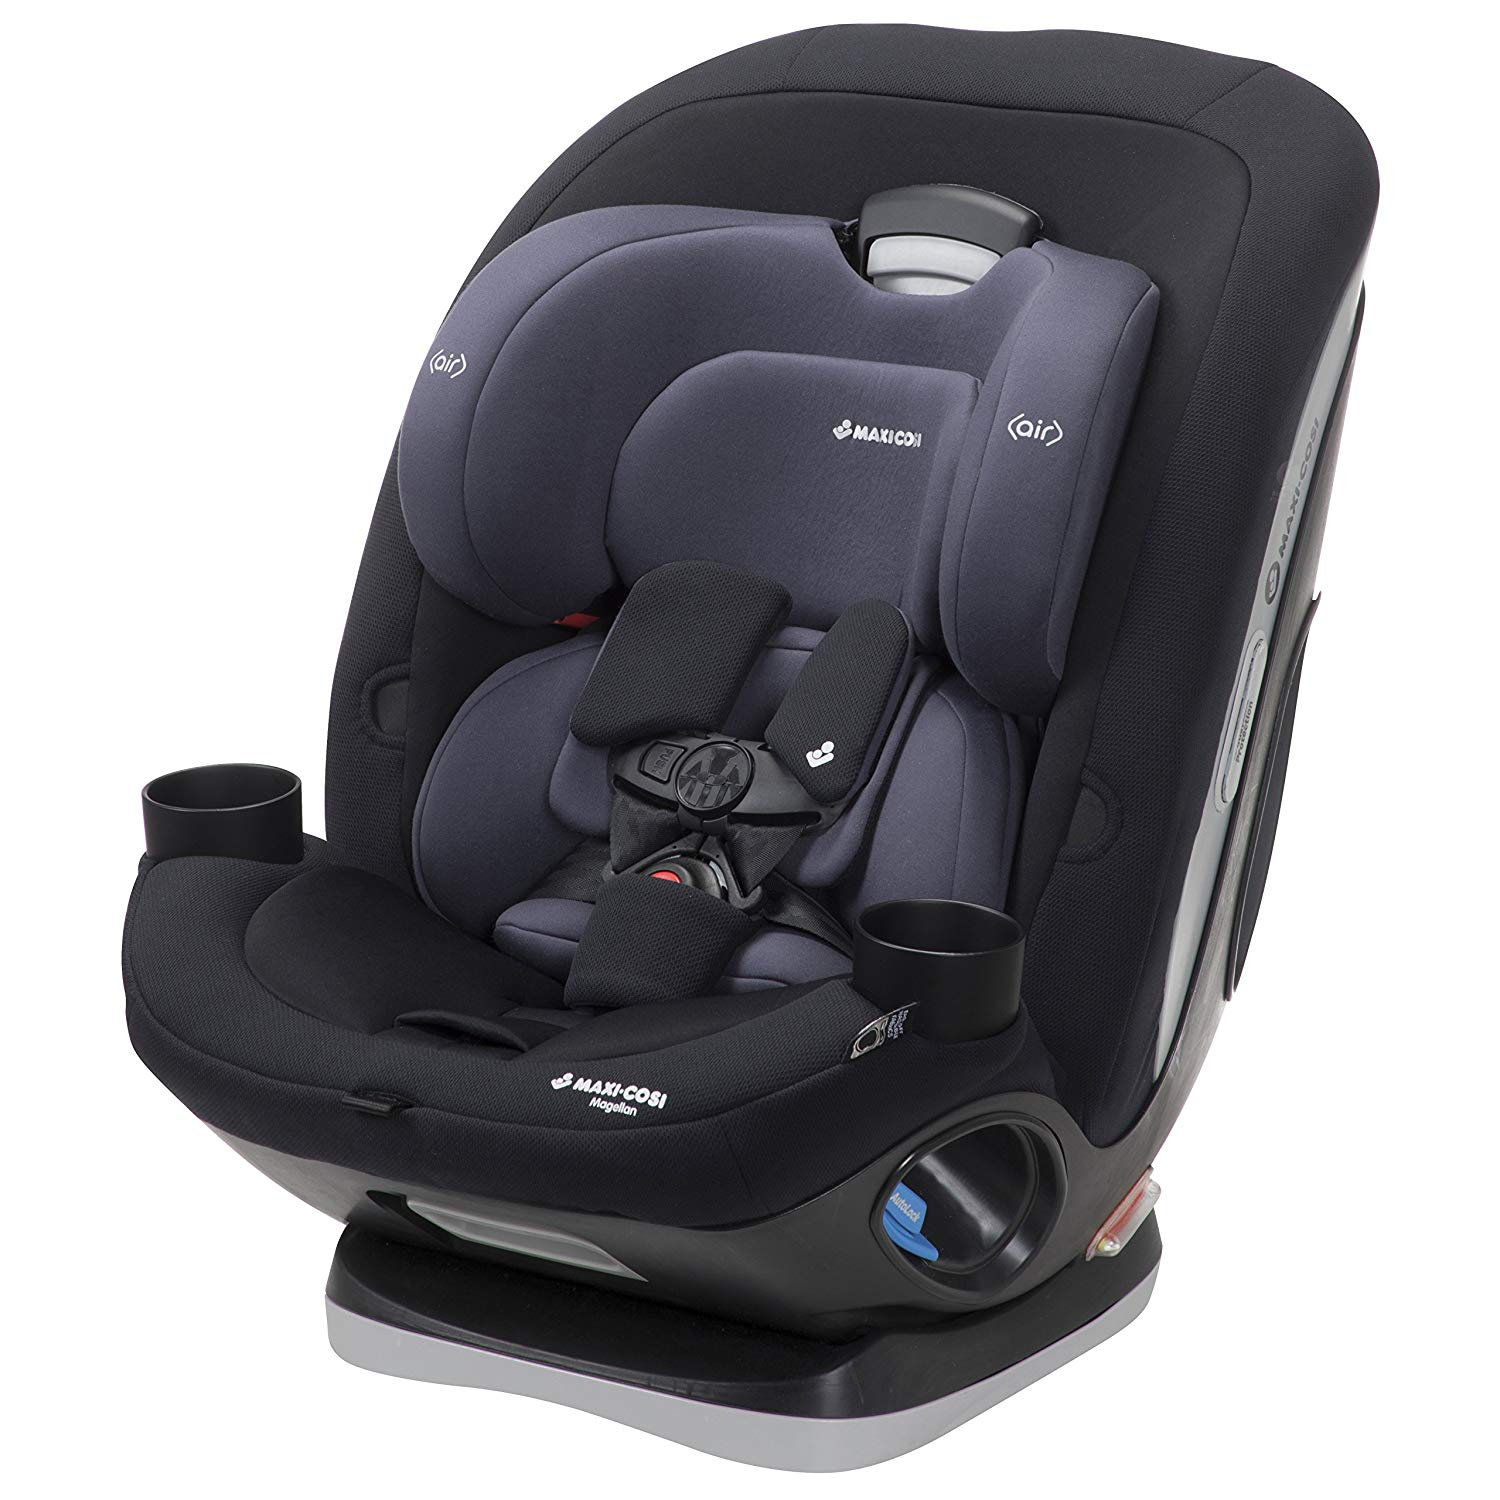 Top 15 Best Convertible Car Seat For Small Cars In 2020